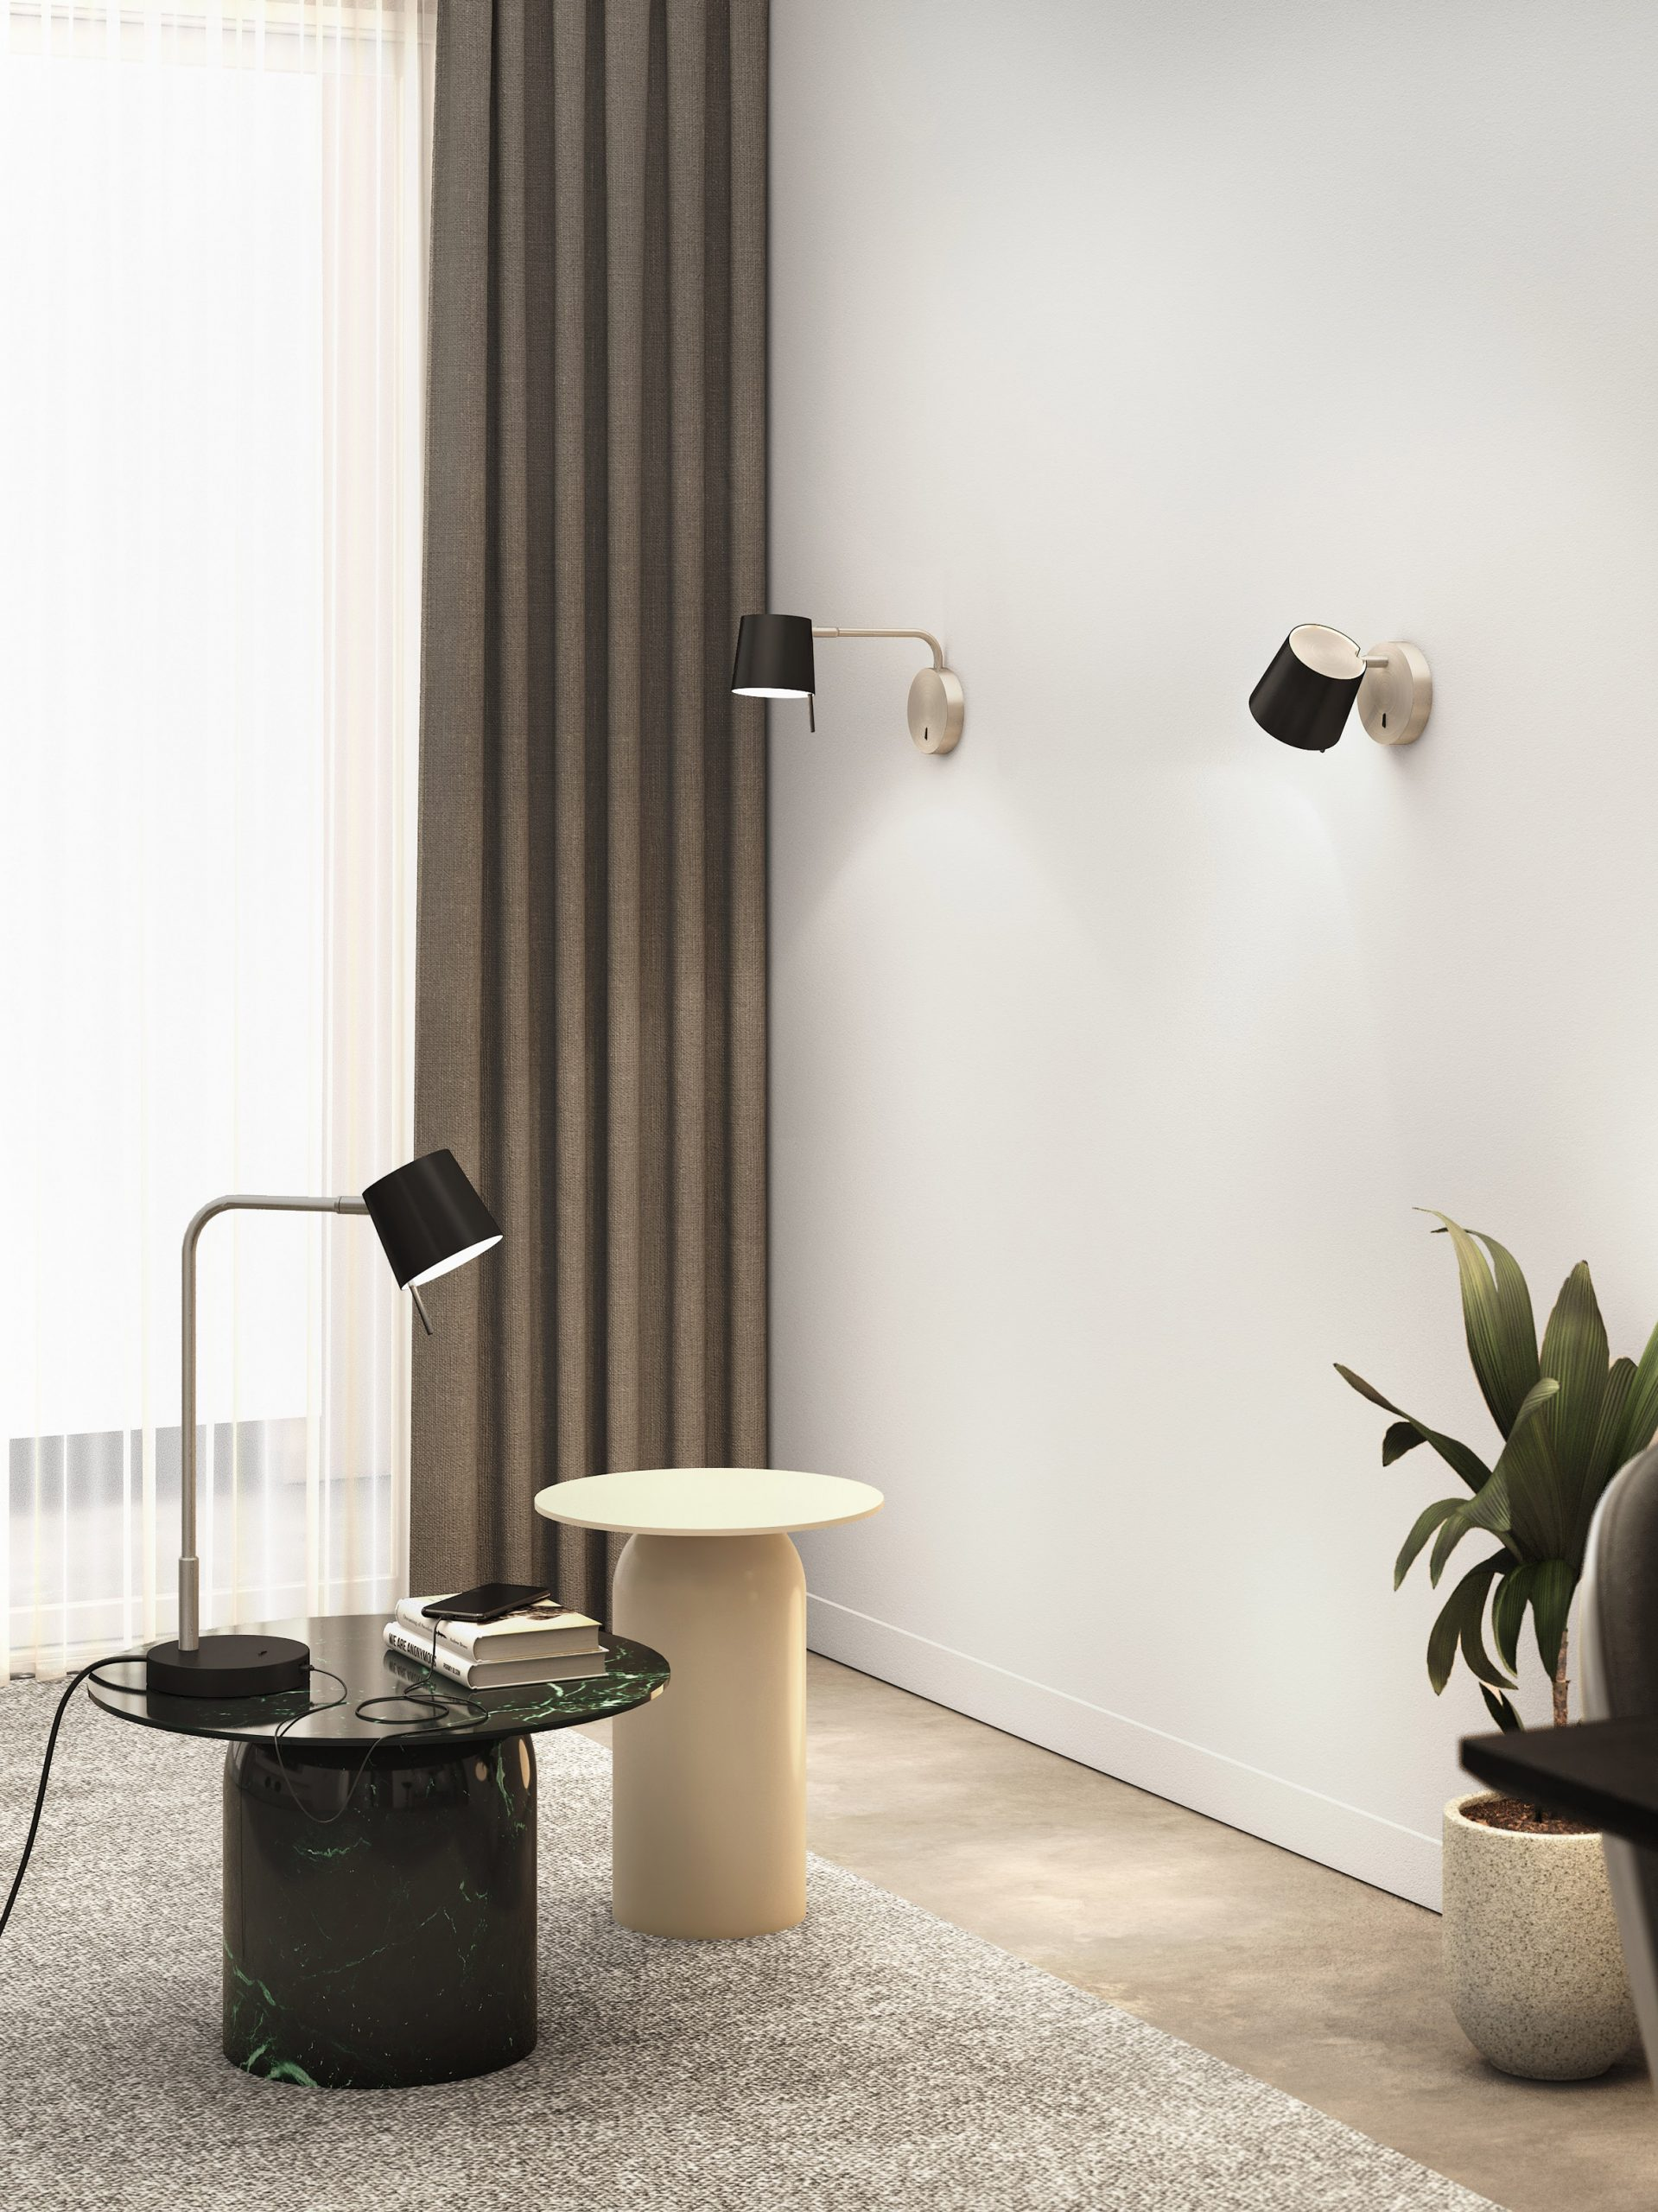 Three different lamp types by Astro Lighting